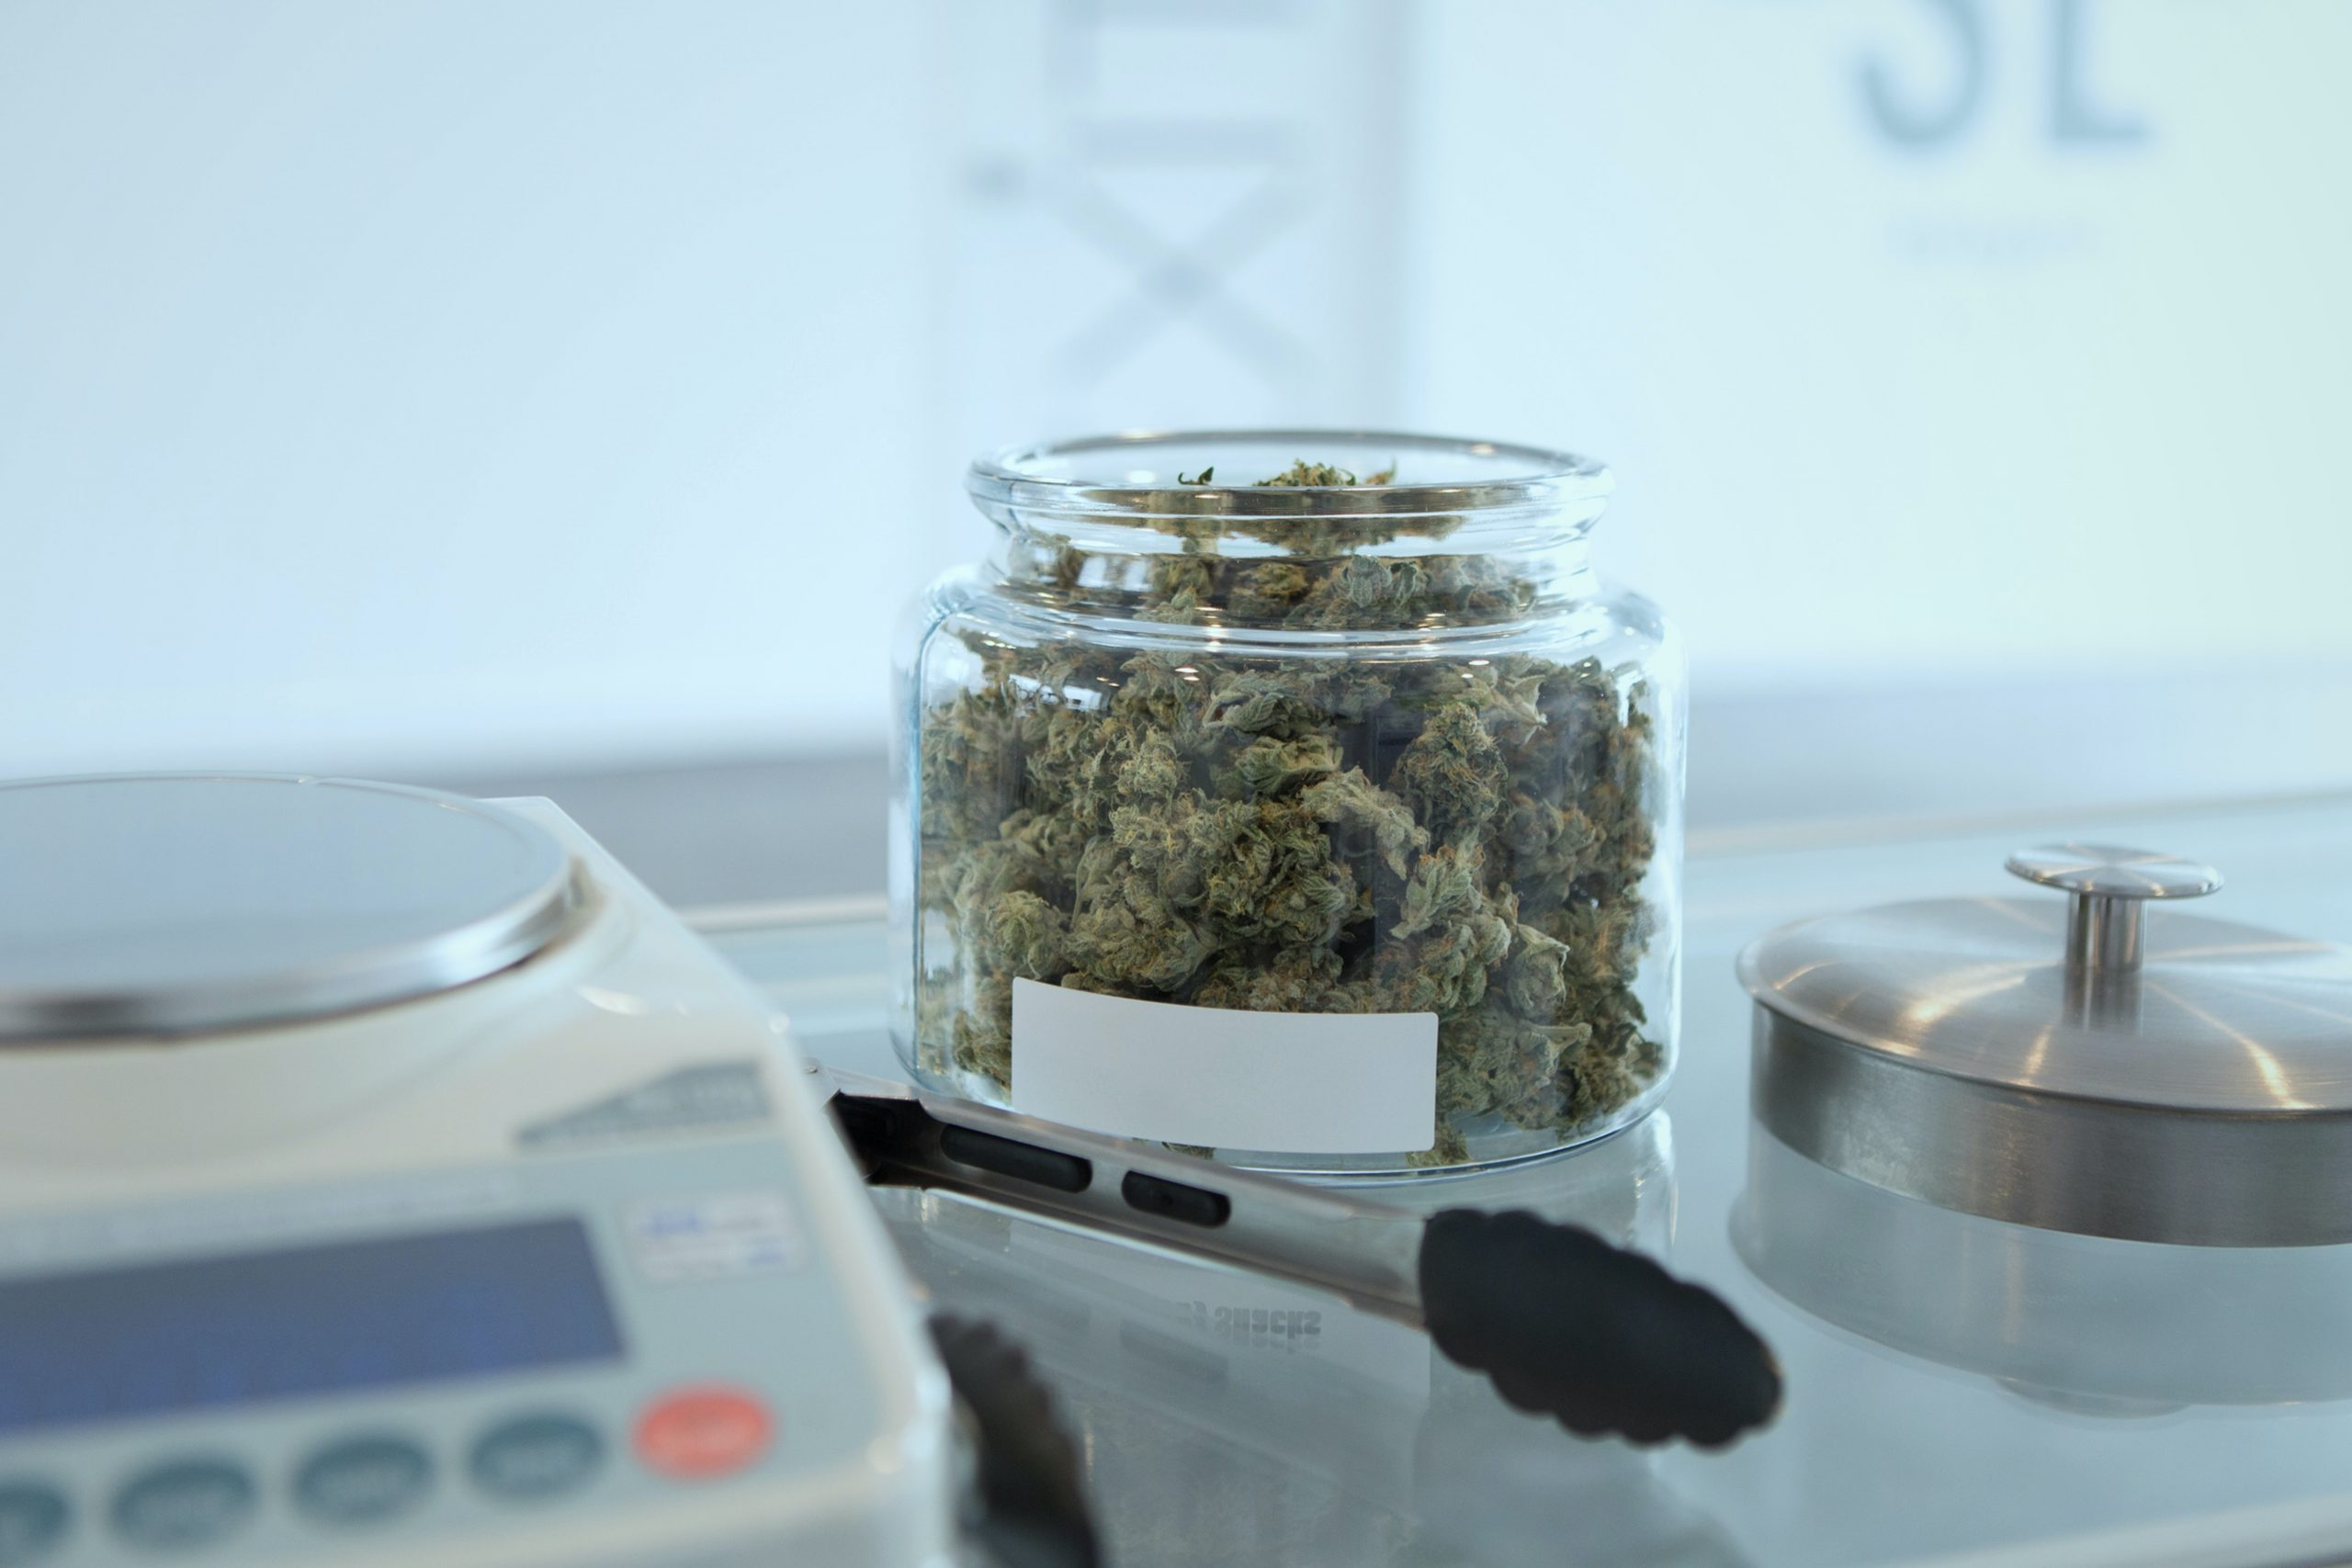 Who Qualifies for Medical Cannabis in Utah? A Resource for Medical Providers